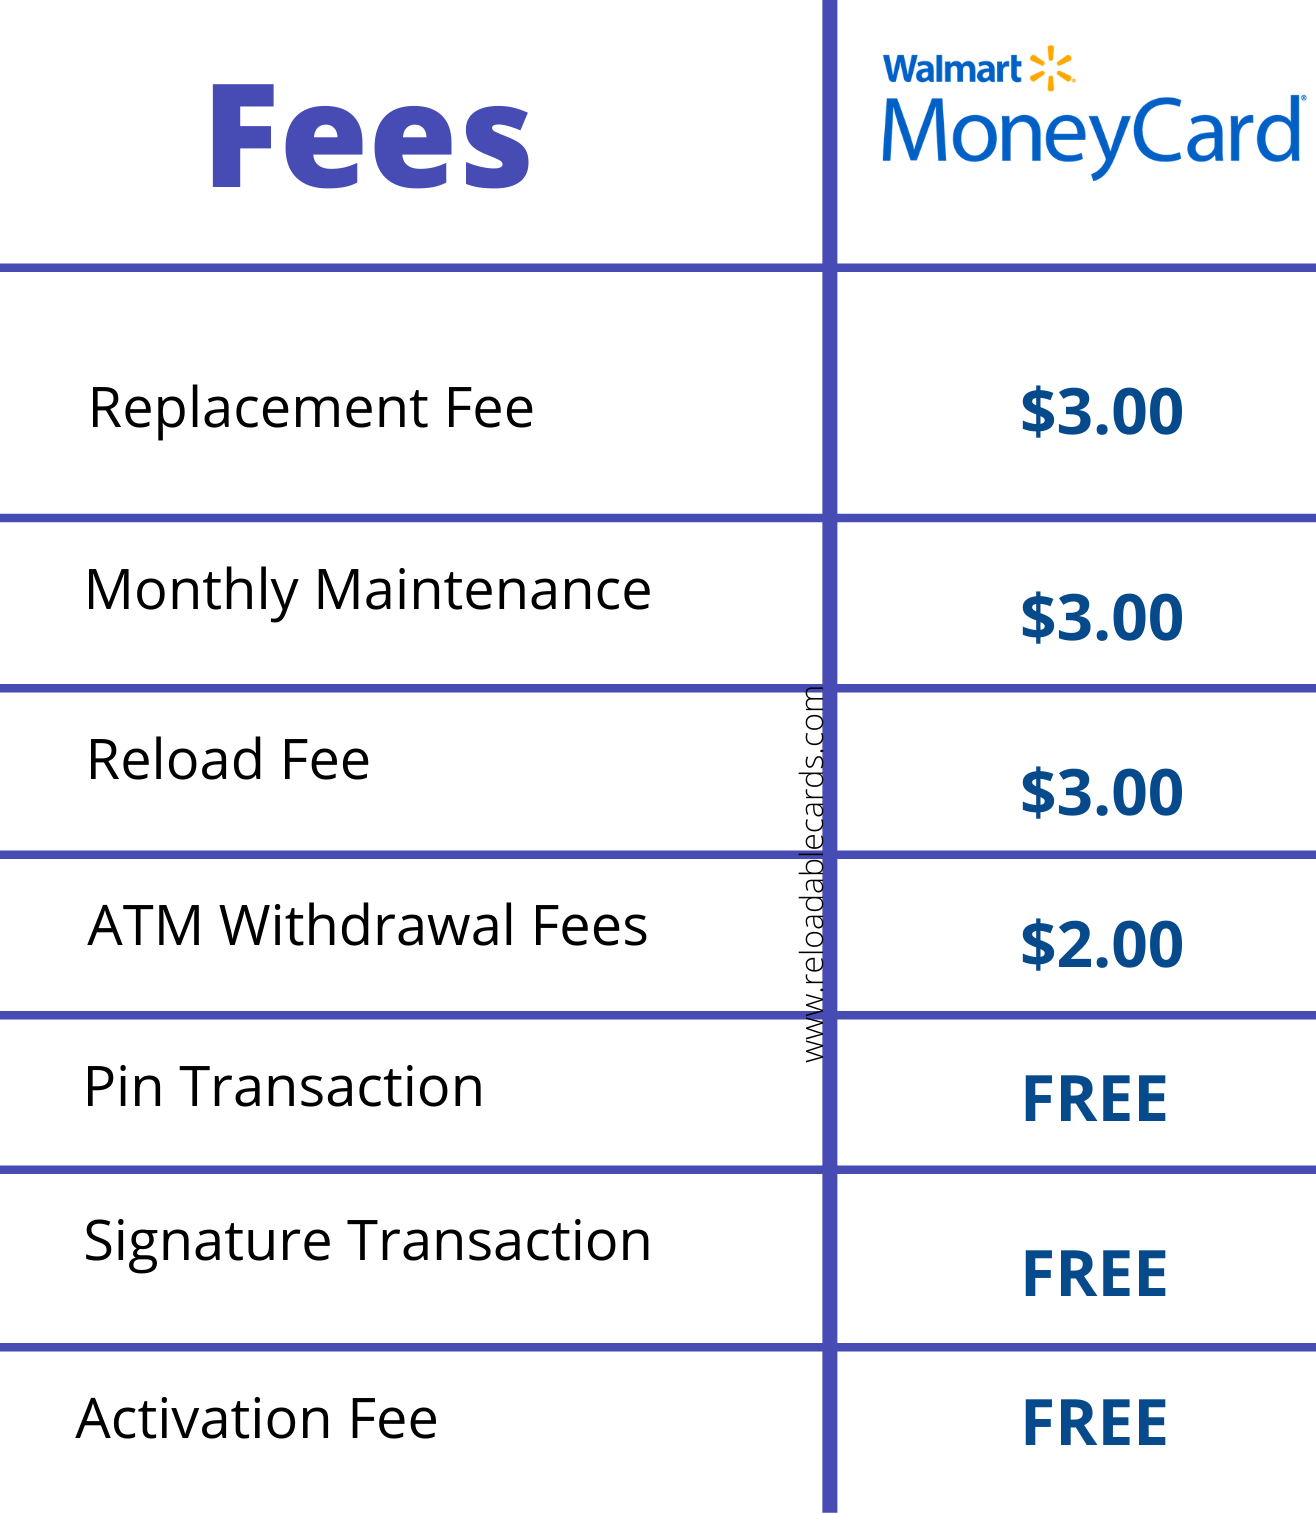 walmart moneycard fees